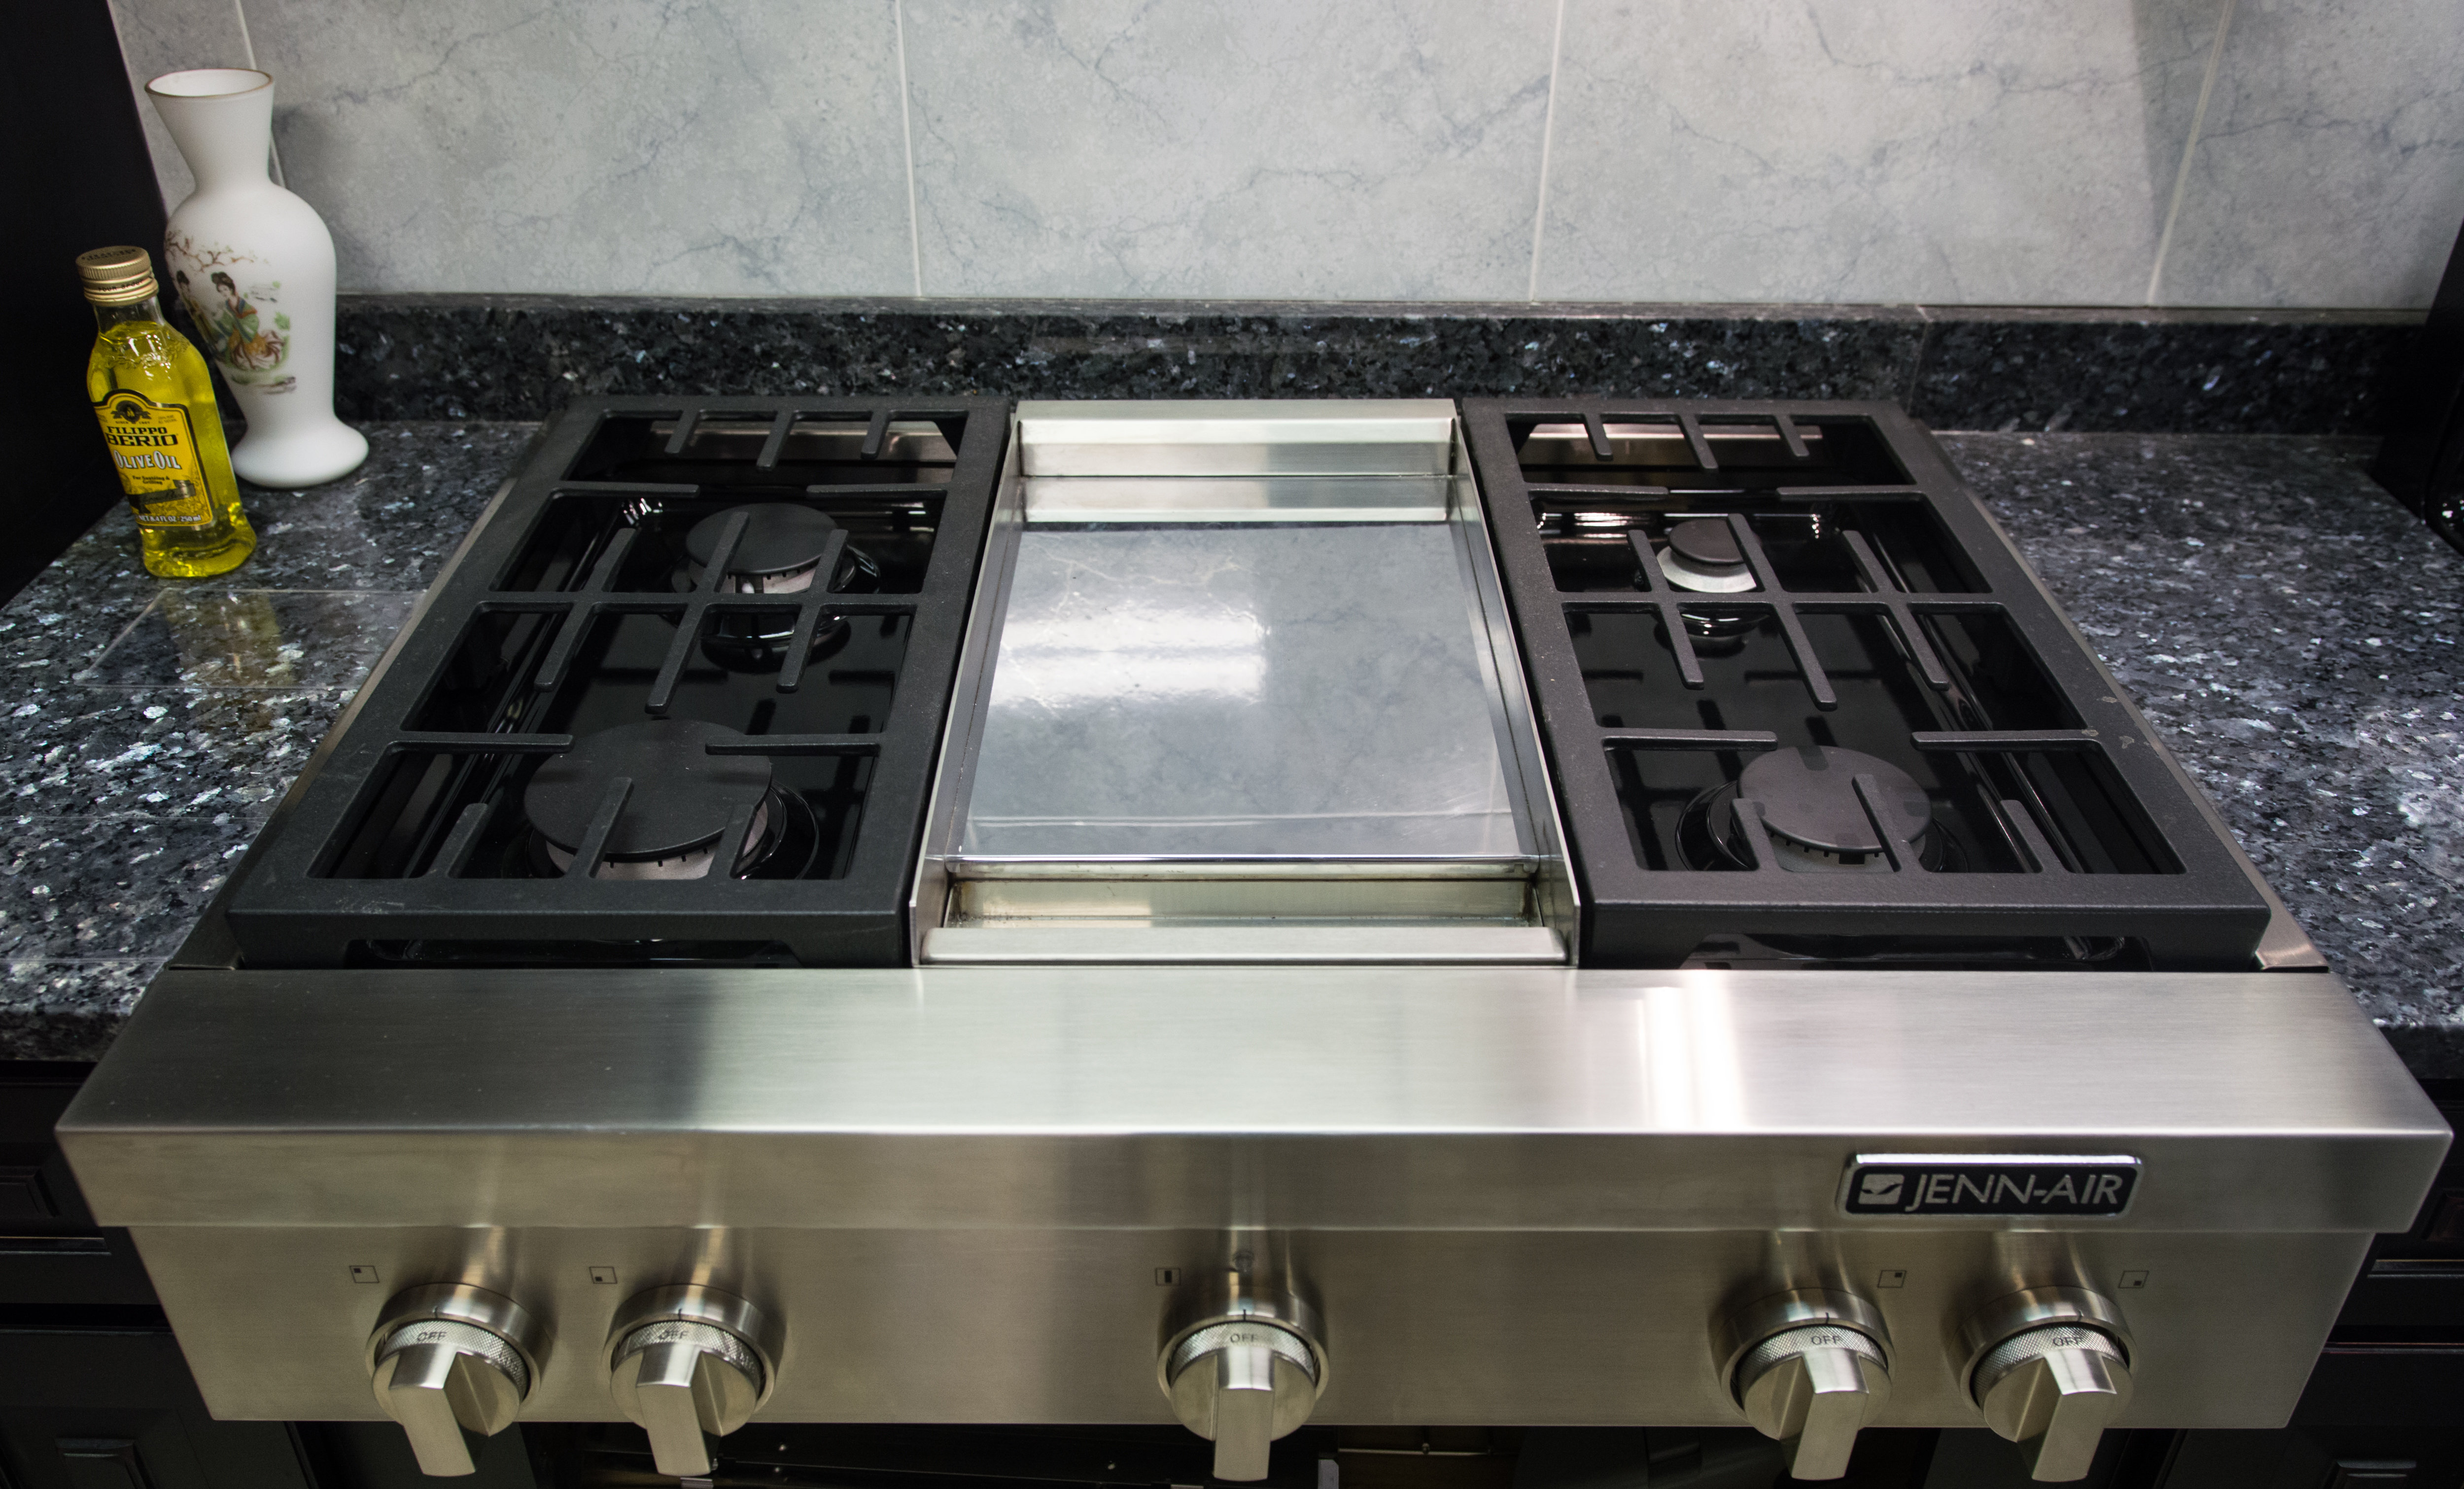 Jenn-Air JGCP536WP 36-Inch Gas Rangetop Review - Reviewed.com ...